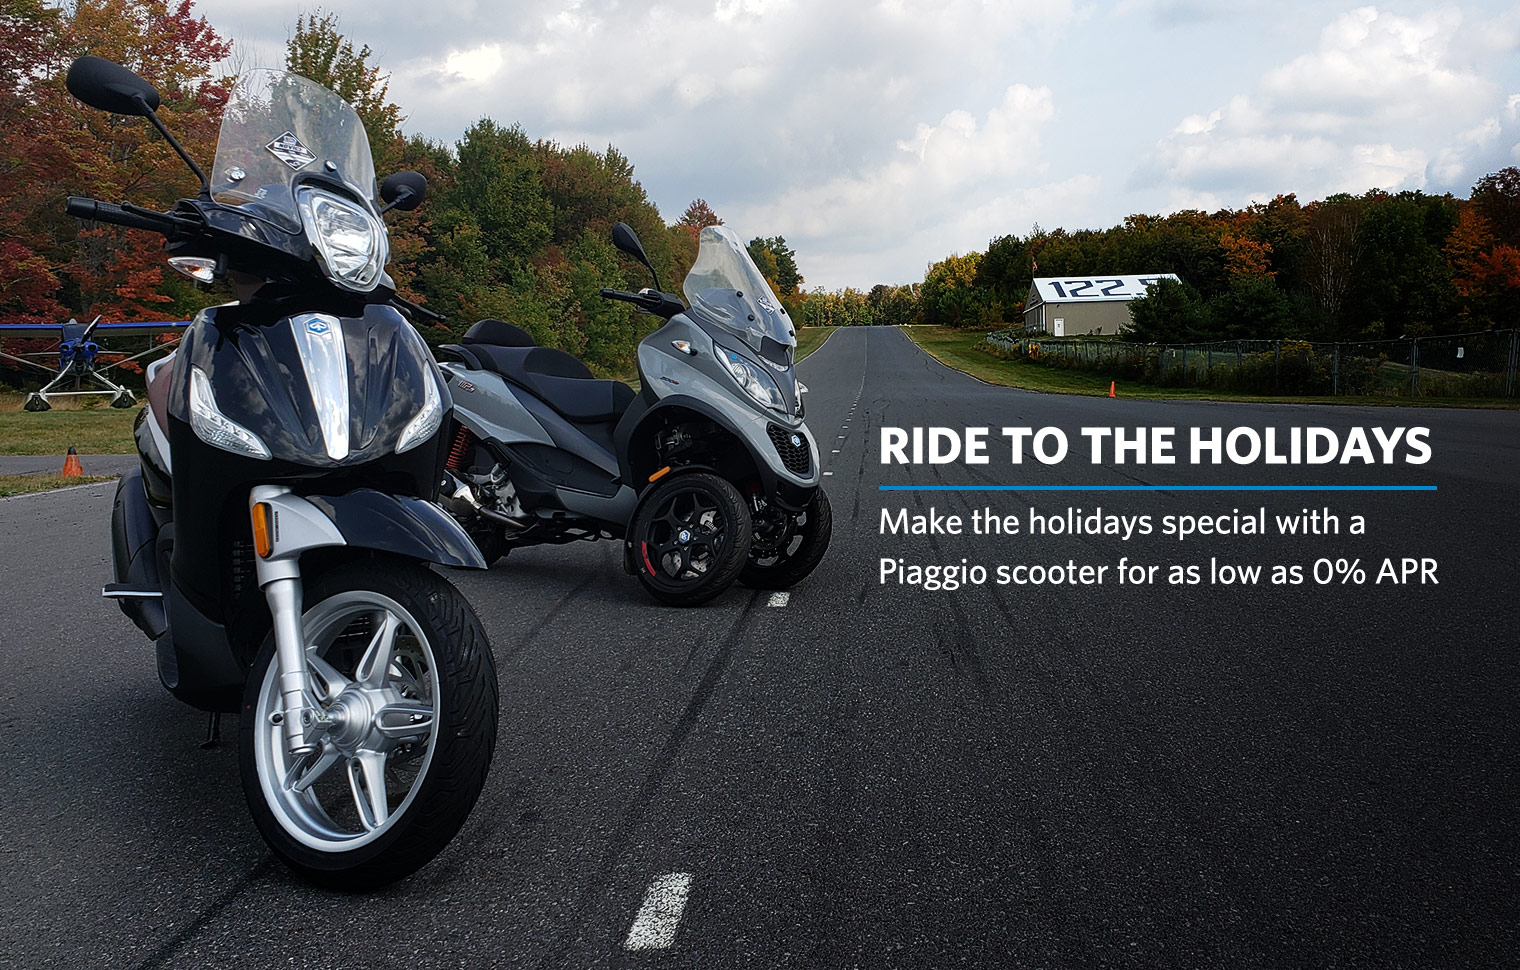 Piaggio: The Official Website - Piaggio com